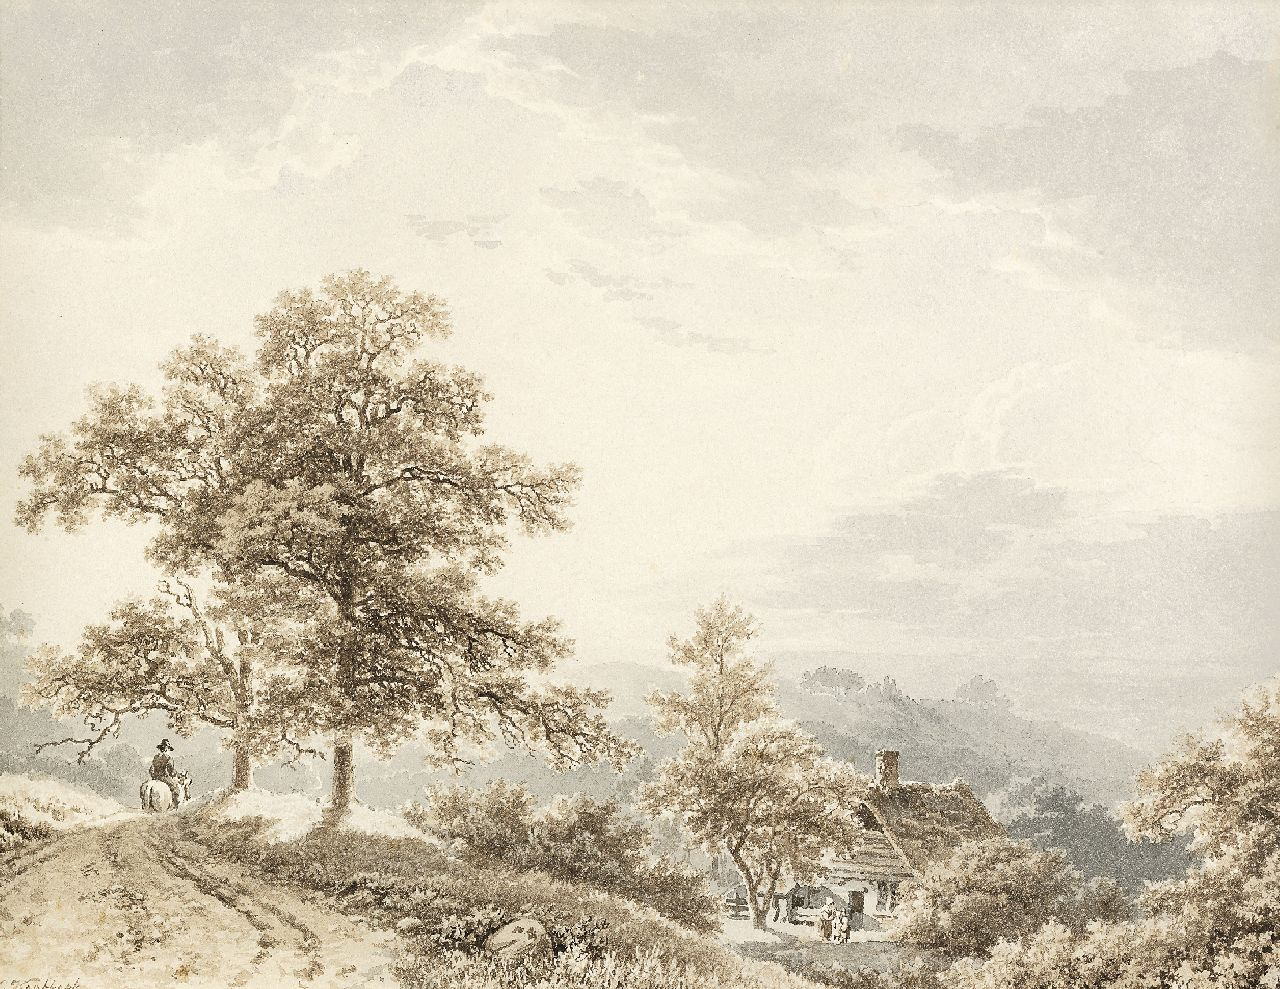 Koekkoek B.C.  | Barend Cornelis Koekkoek | Watercolours and other works on paper offered for sale | Traveller in a hilly landscape, sepia and washed ink on paper 21.2 x 27.4 cm, signed l.l. and painted ca. 1833-1840